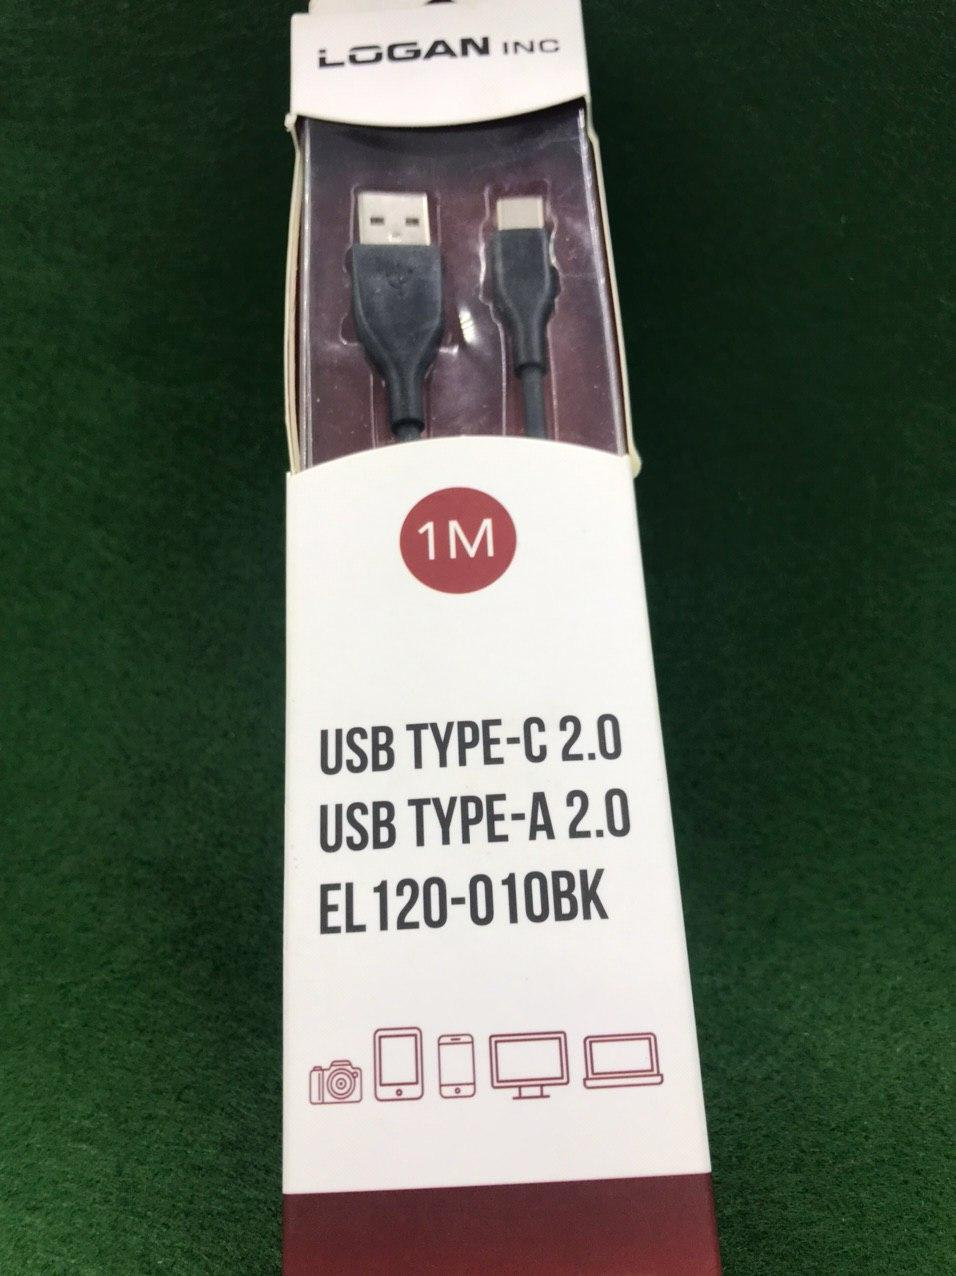 Кабель Logan Lightning – USB 1 м чорний (EL120-010BK) USB Type-C - USB 2.0